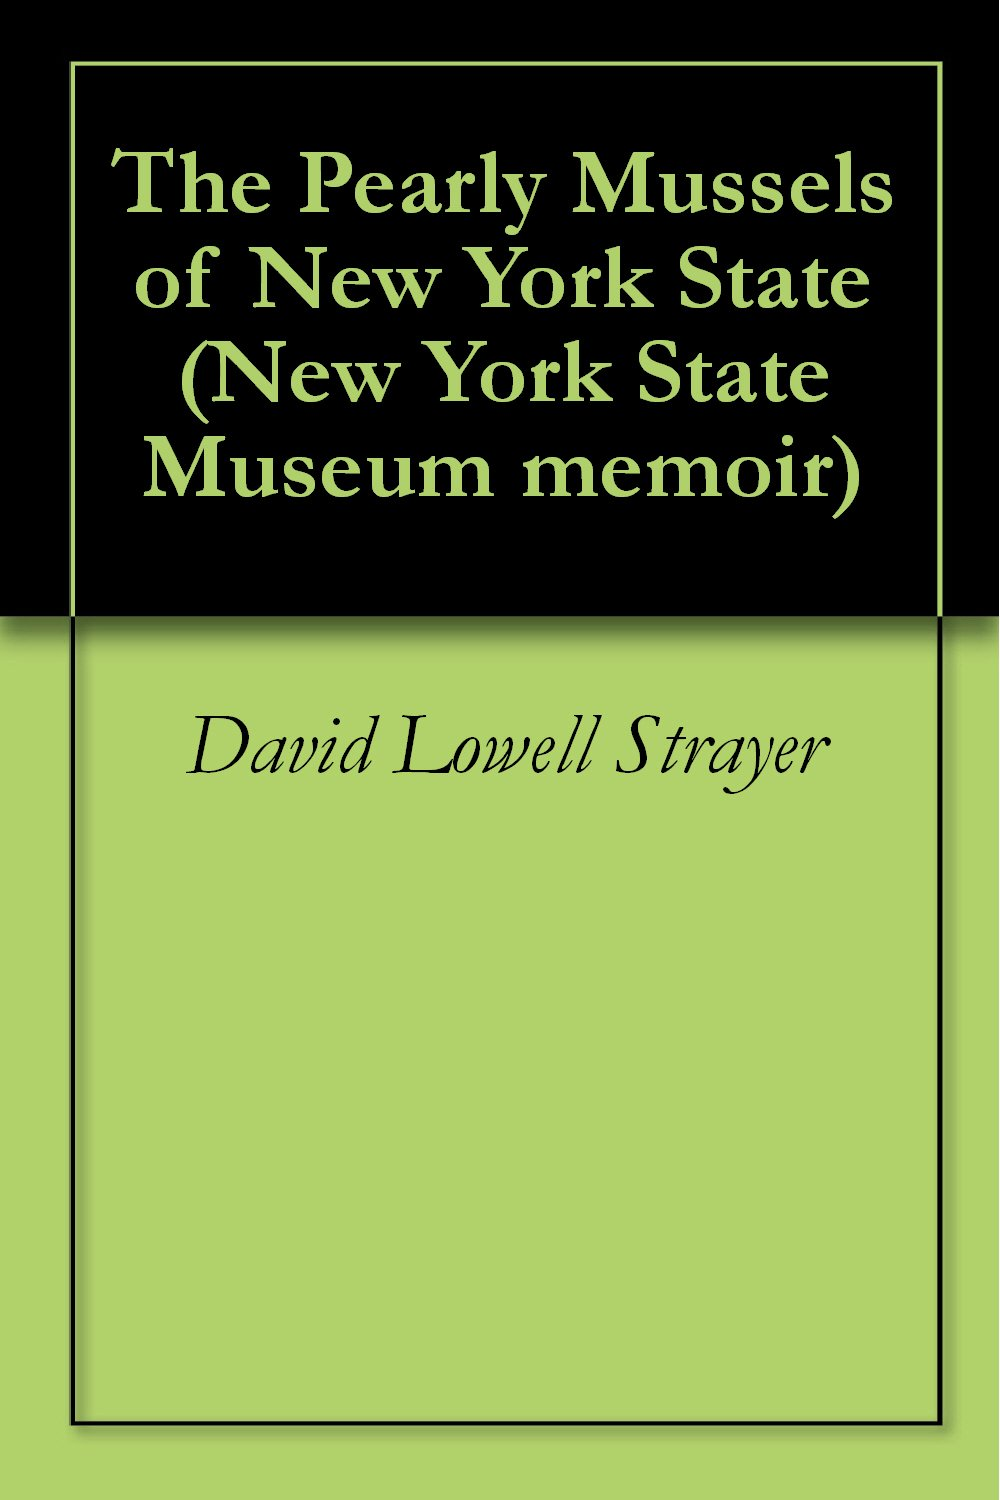 The Pearly Mussels of New York State (New York State Museum memoir)